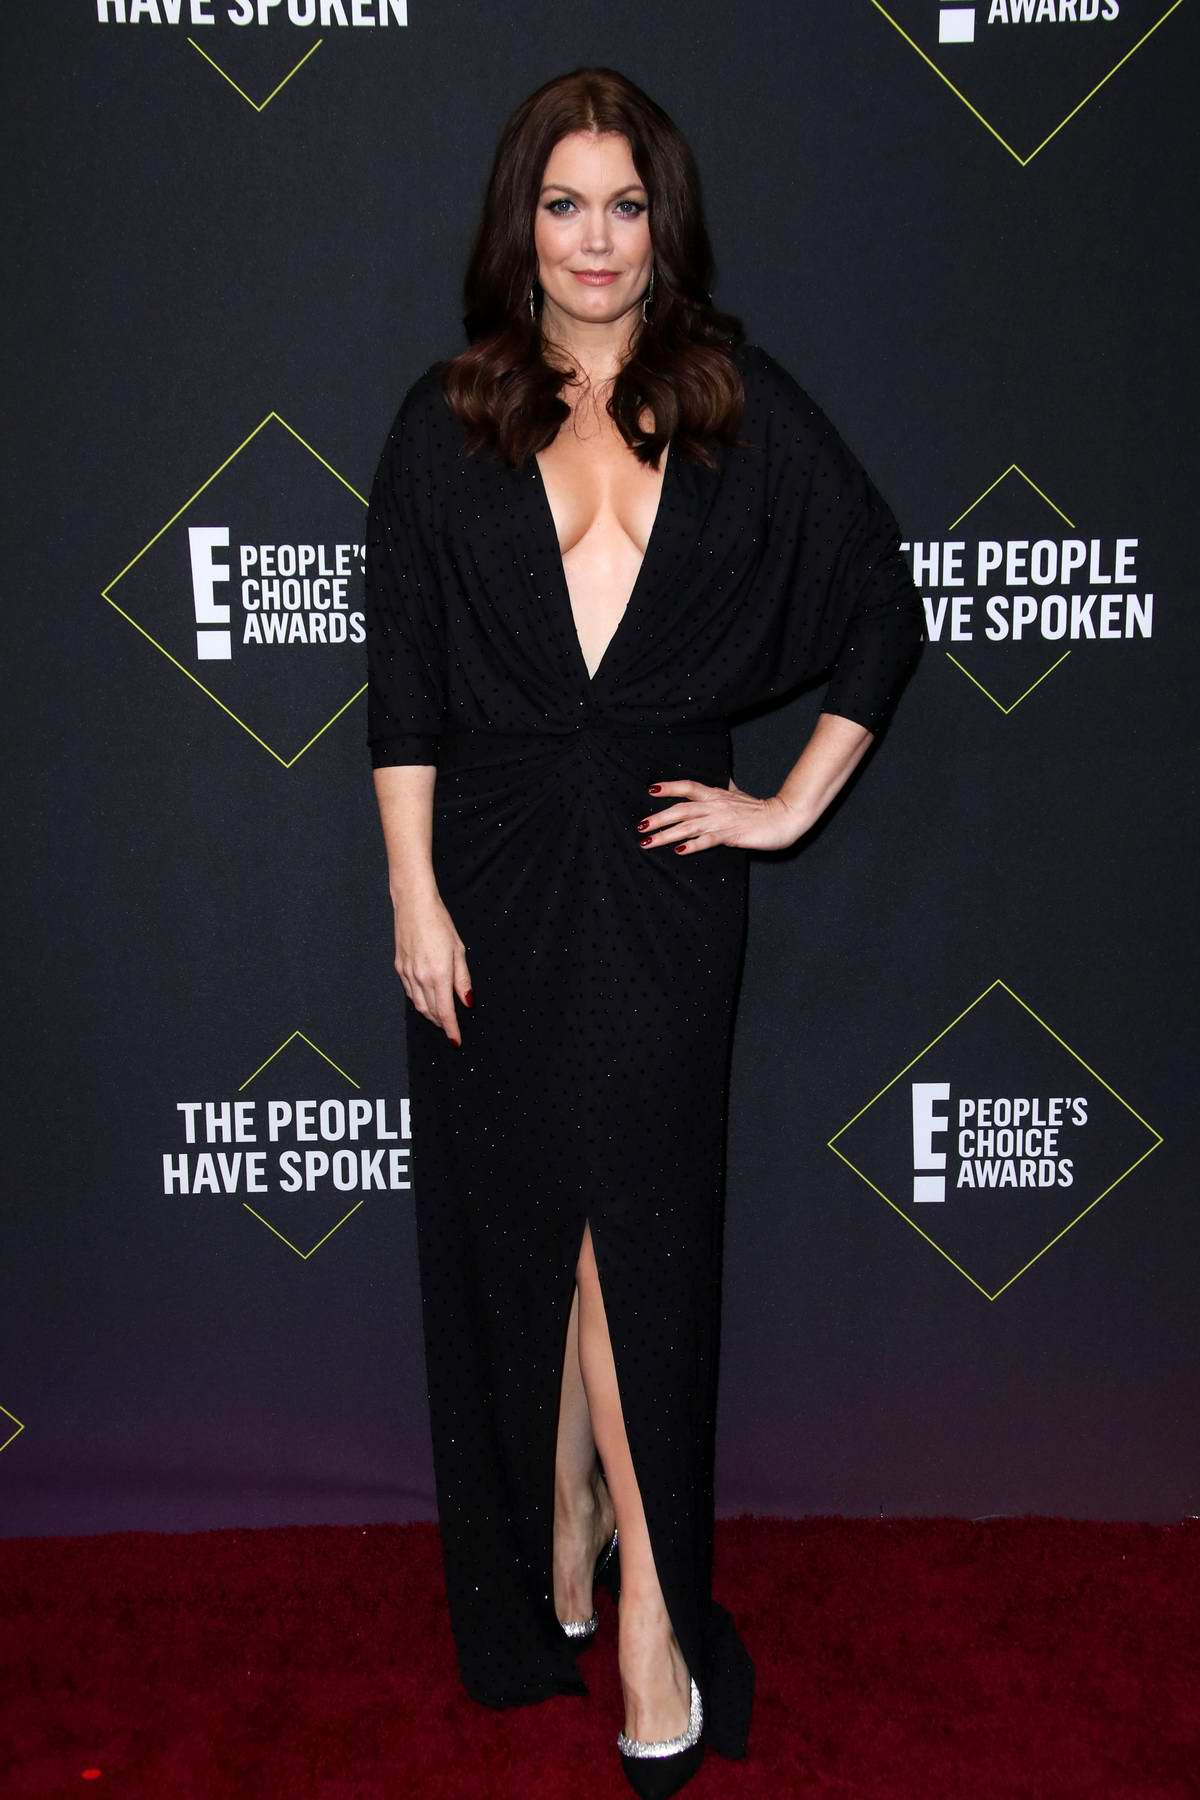 Bellamy Young attends the 2019 E! People's Choice Awards held at the Barker Hangar in Santa Monica, California